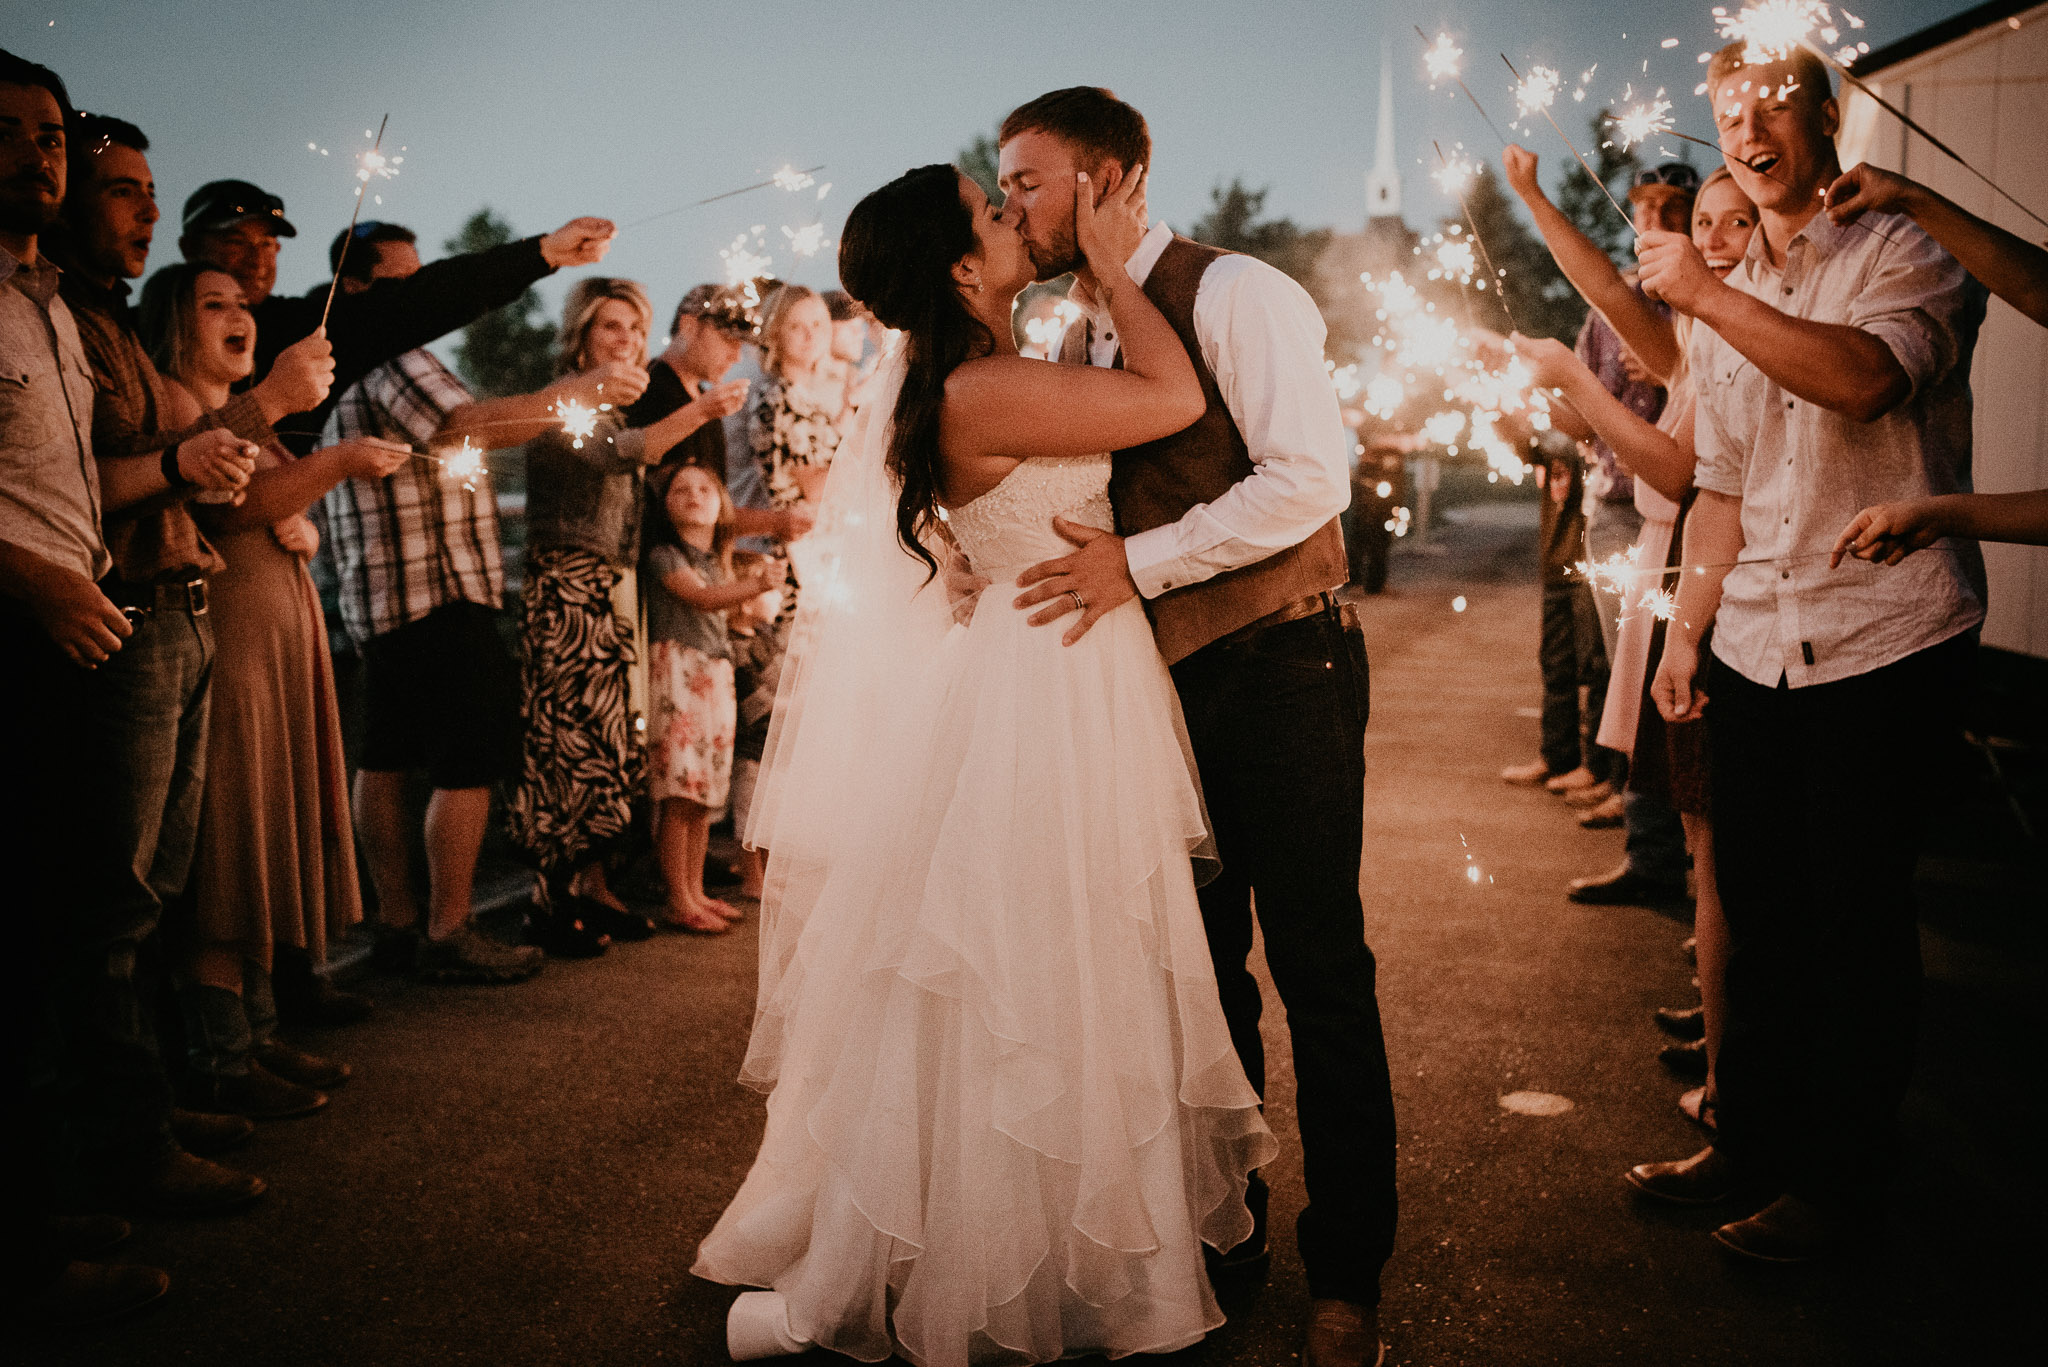 Makayla Madden Photography Dance With Me Boise Wedding Photographer Still Water Hollow Bride Groom White Chapel Wedding Venue Rustic Countryside Wedding Ideas Inspiration Sparkler Exit